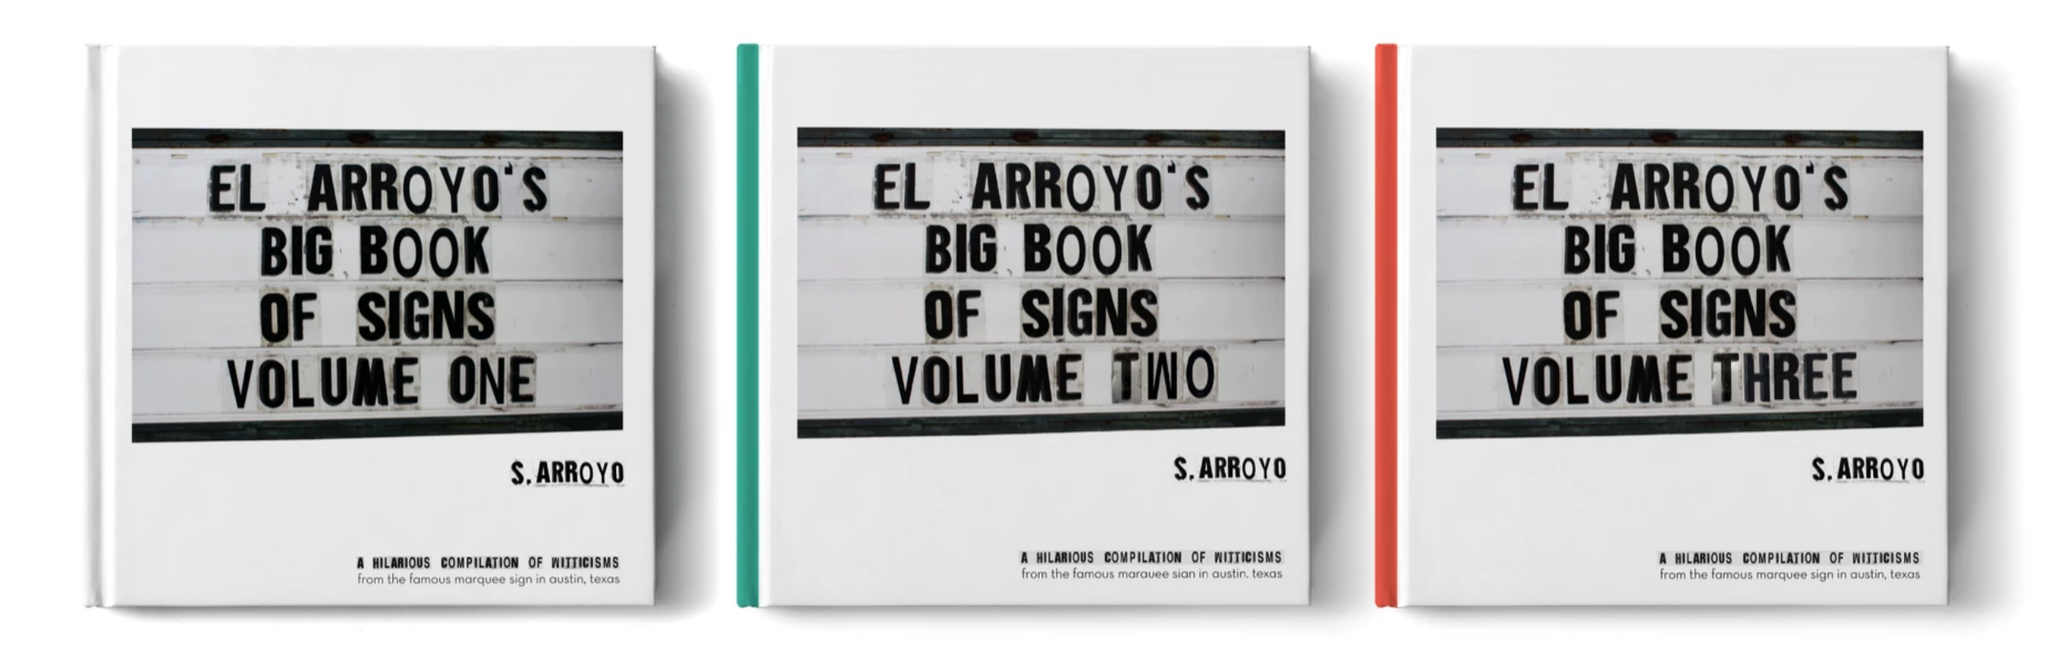 El Arroyo's Big Book Volume Set